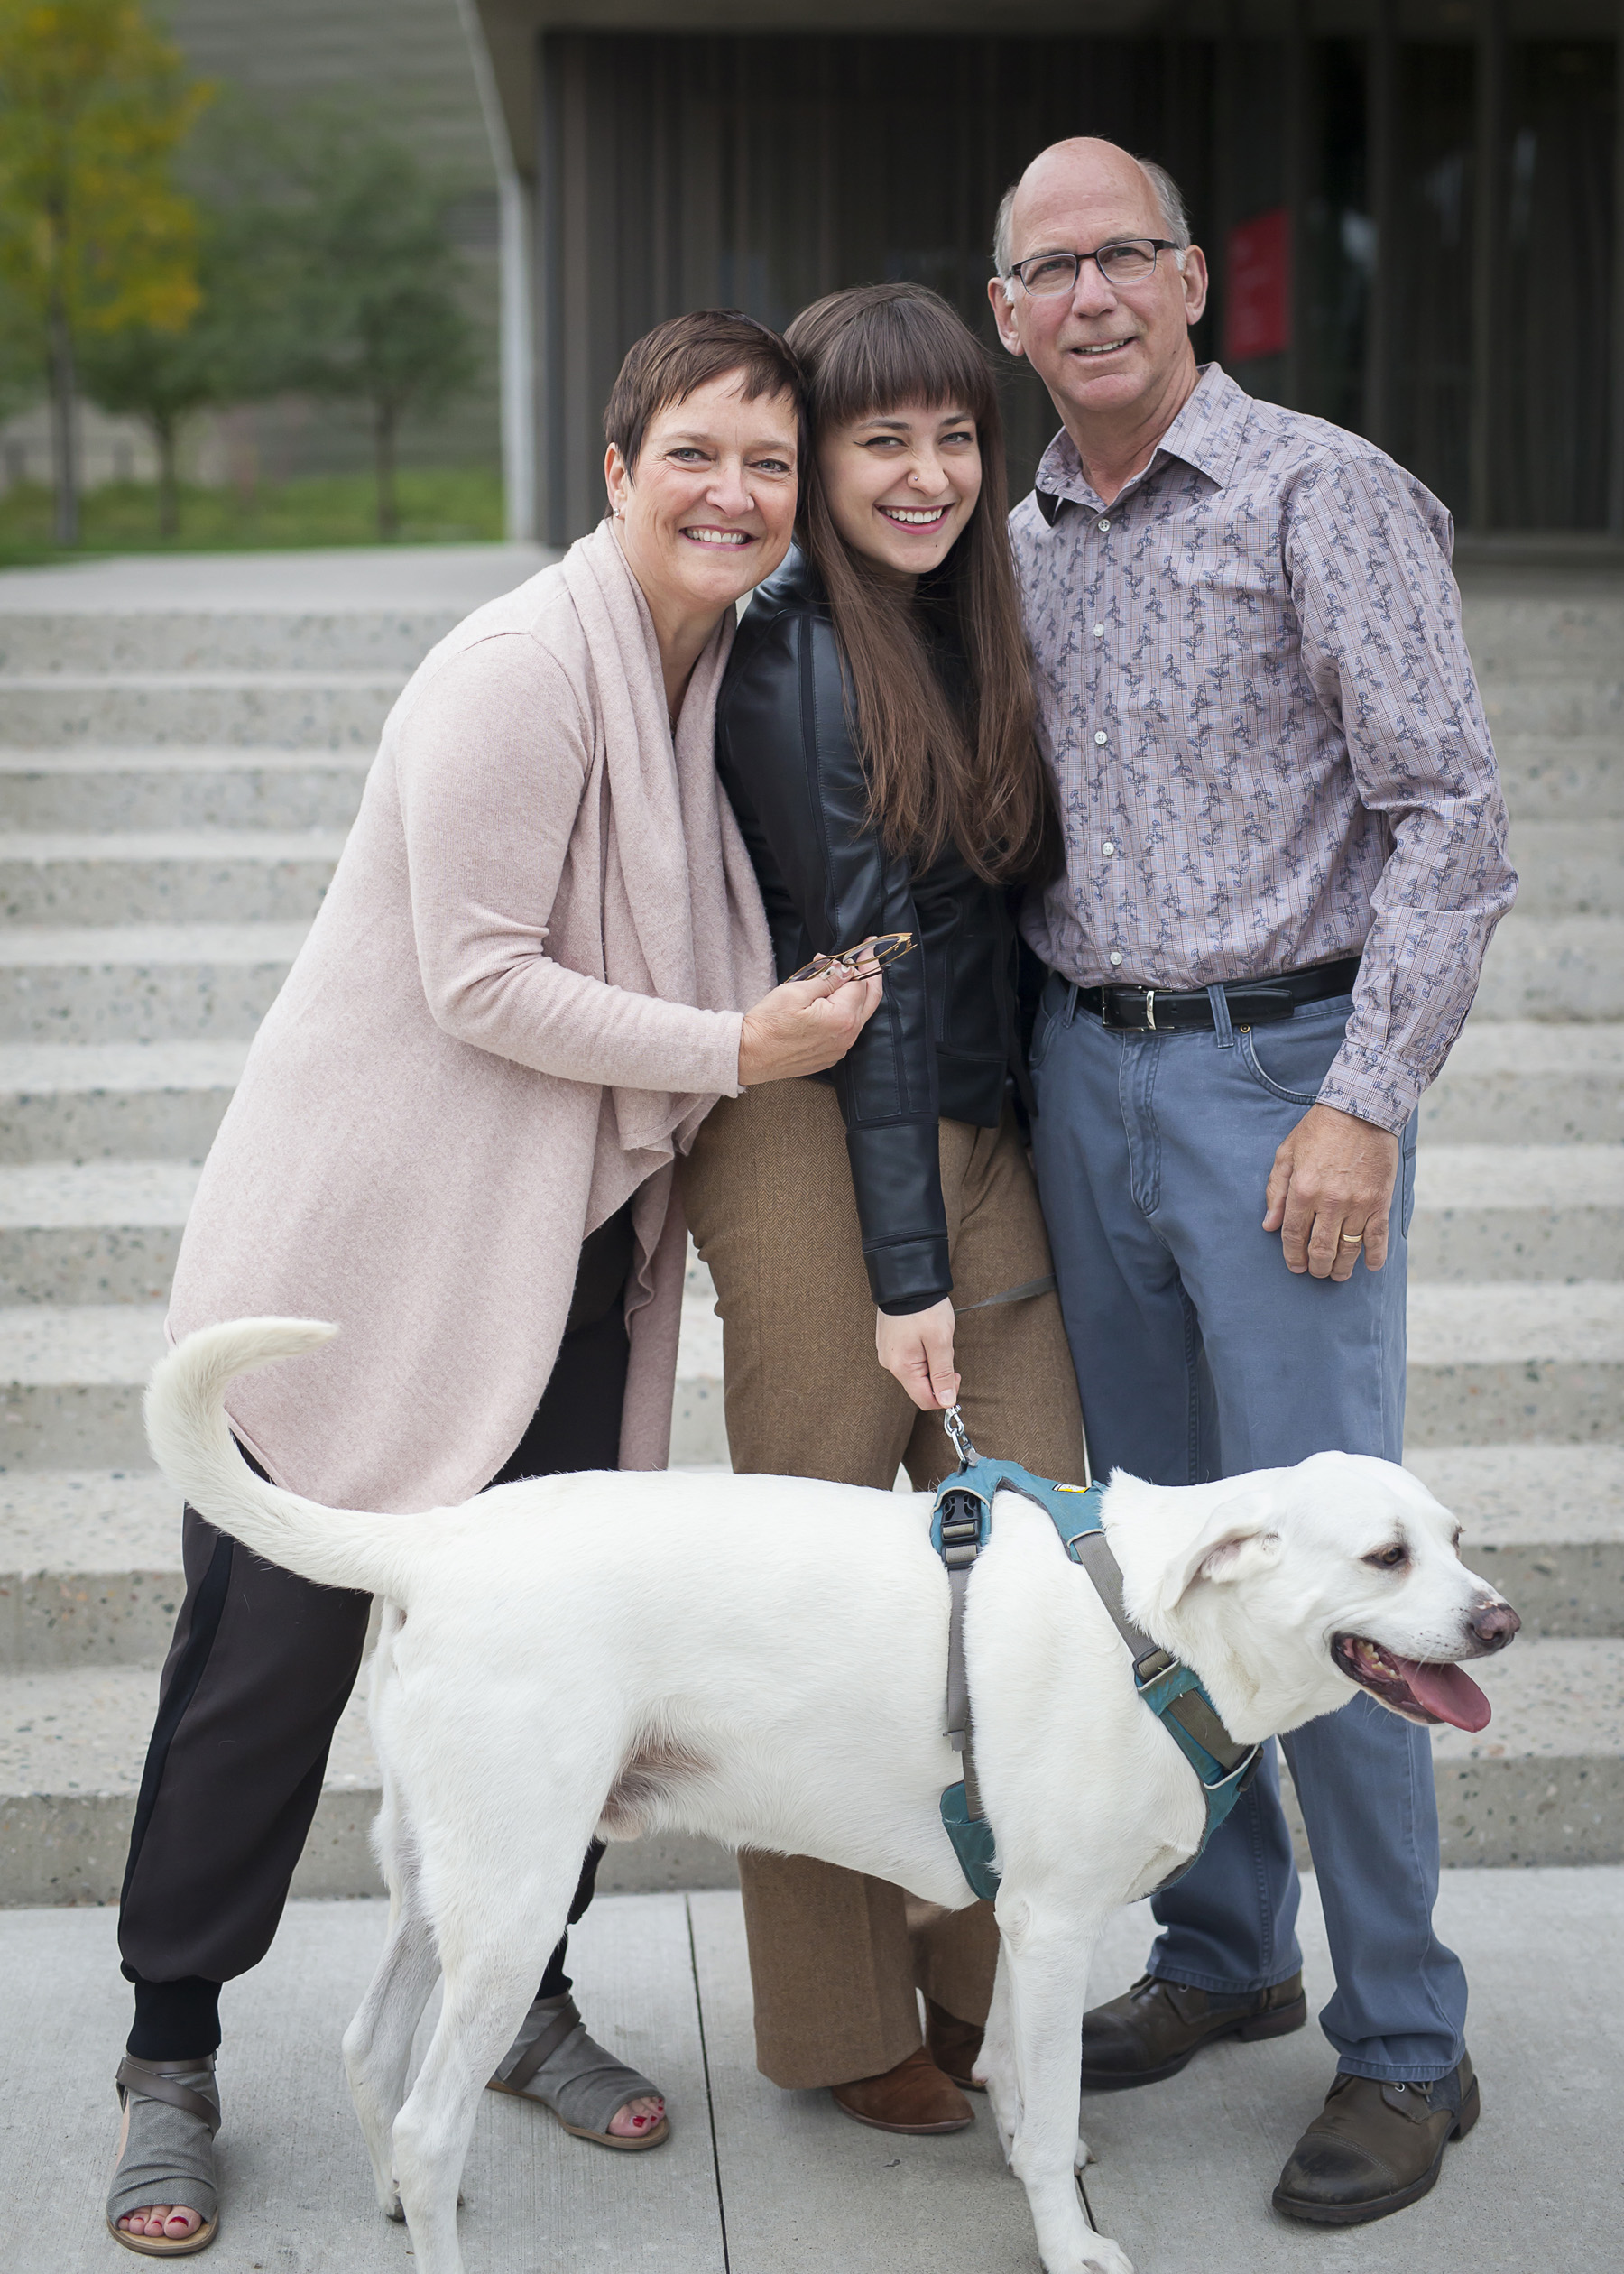 Senior Portrait with family and dog in Denver, photographer Jennifer Koskinen